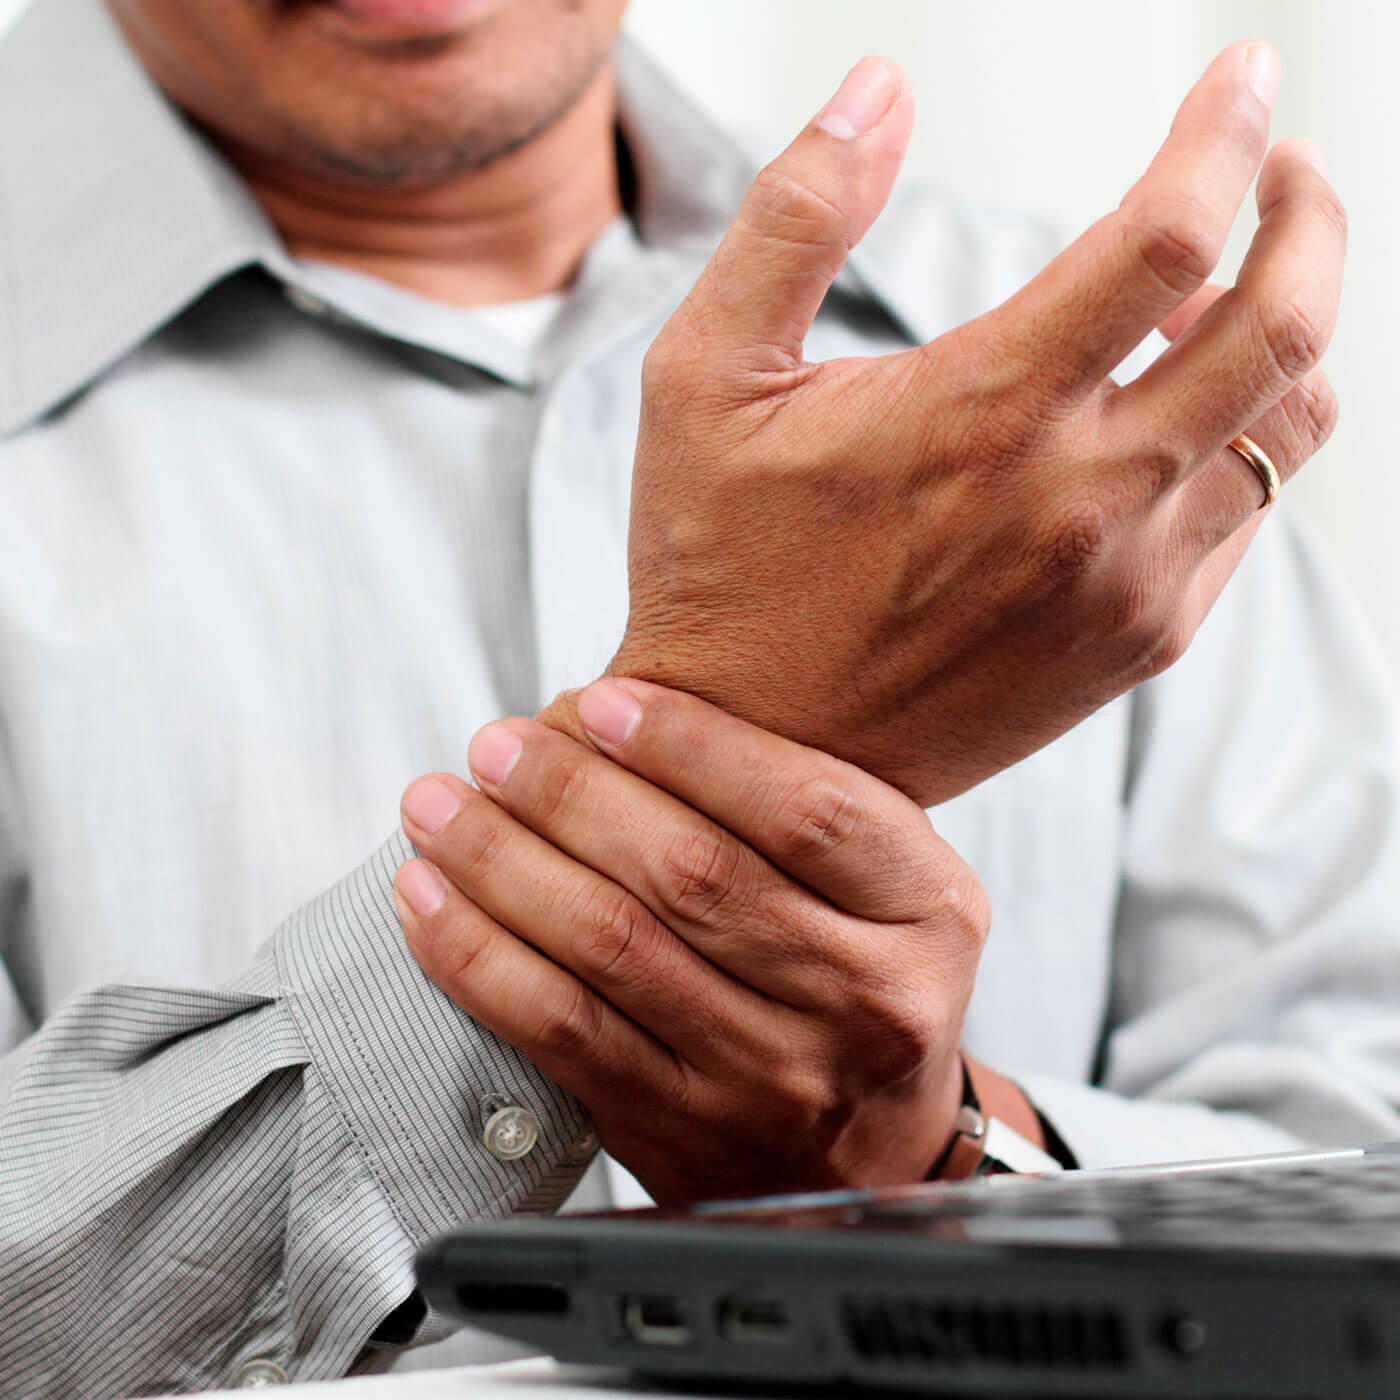 Essential Chiropractic and Healthcare Clinic - Carpal Tunnel Syndrome Pain Relief and Treatment